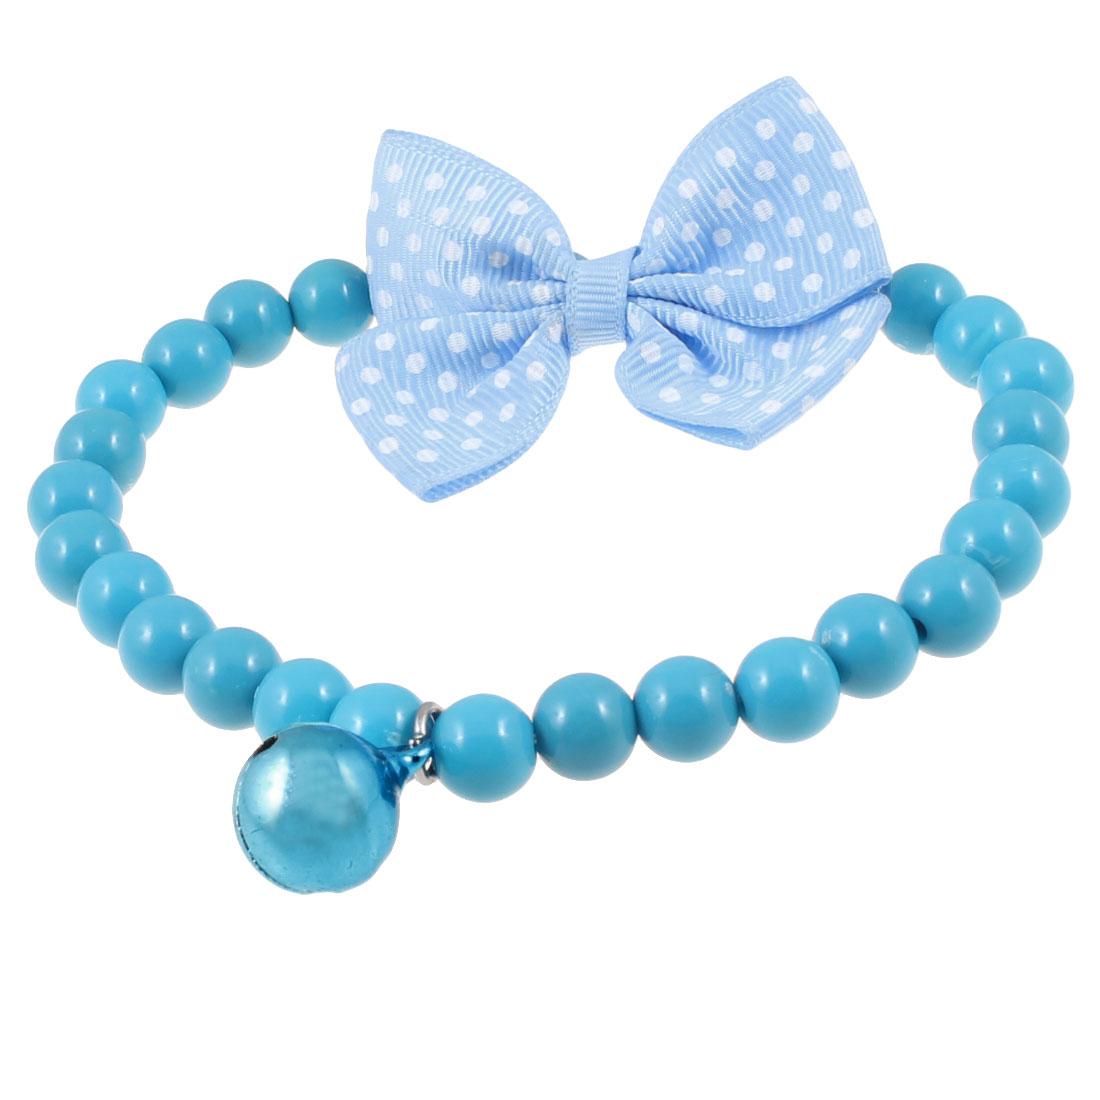 Blue Plastic Beads Jingle Bell Bowtknot Decor Pet Dog Neck Collar